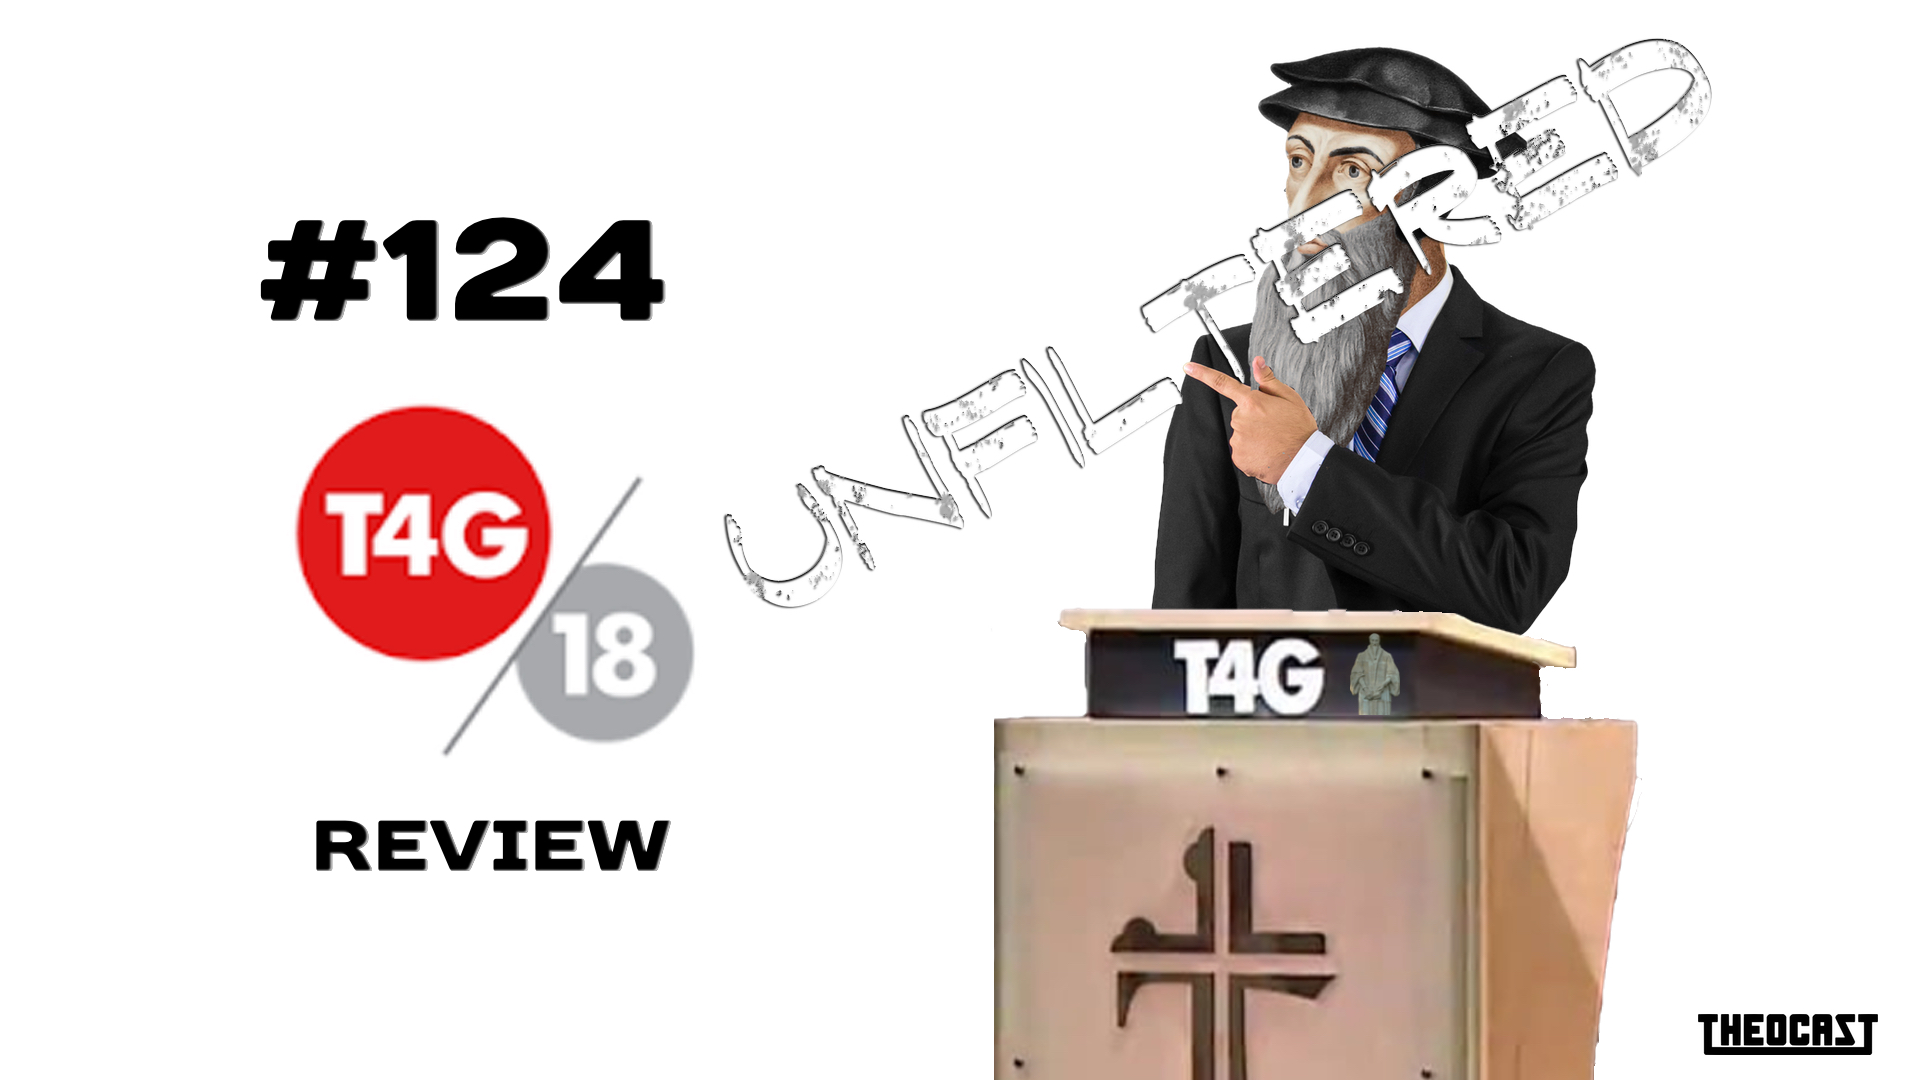 UNFILTERED #124 T4G Review